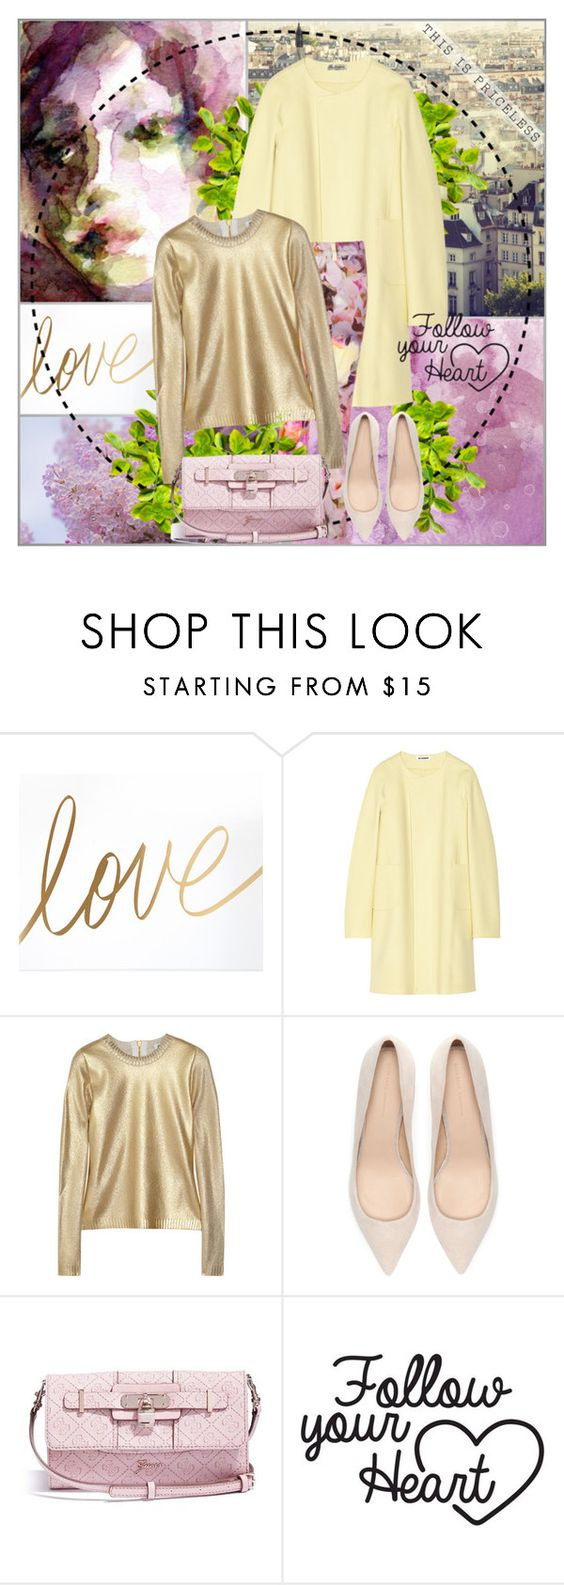 """""""sweet love"""" by sinceraaa ❤ liked on Polyvore featuring Jil Sander, Ted Baker, Moschino, Zara and GUESS"""